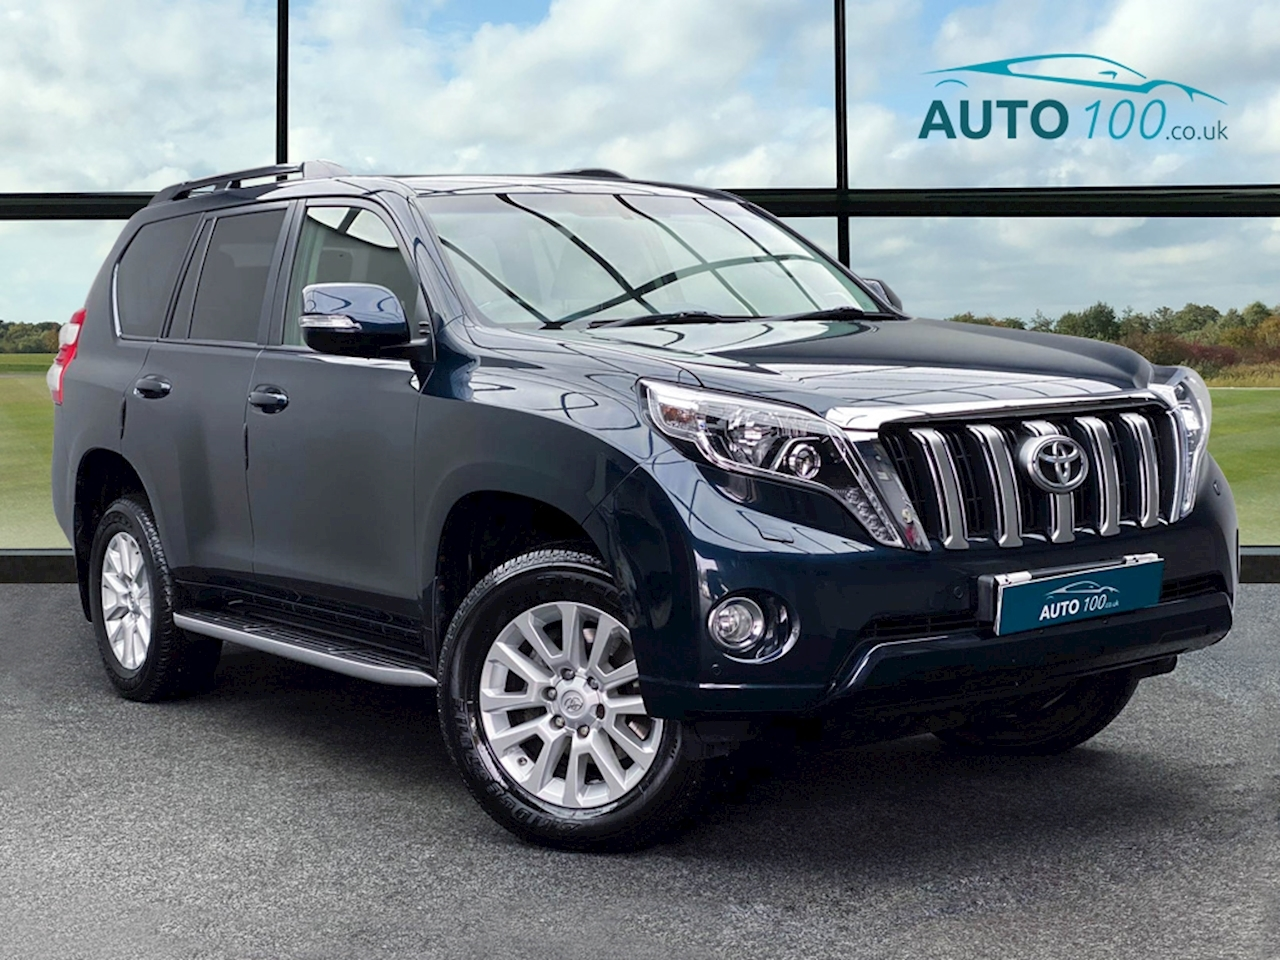 Toyota Land Cruiser Icon SUV 3.0 Automatic Diesel